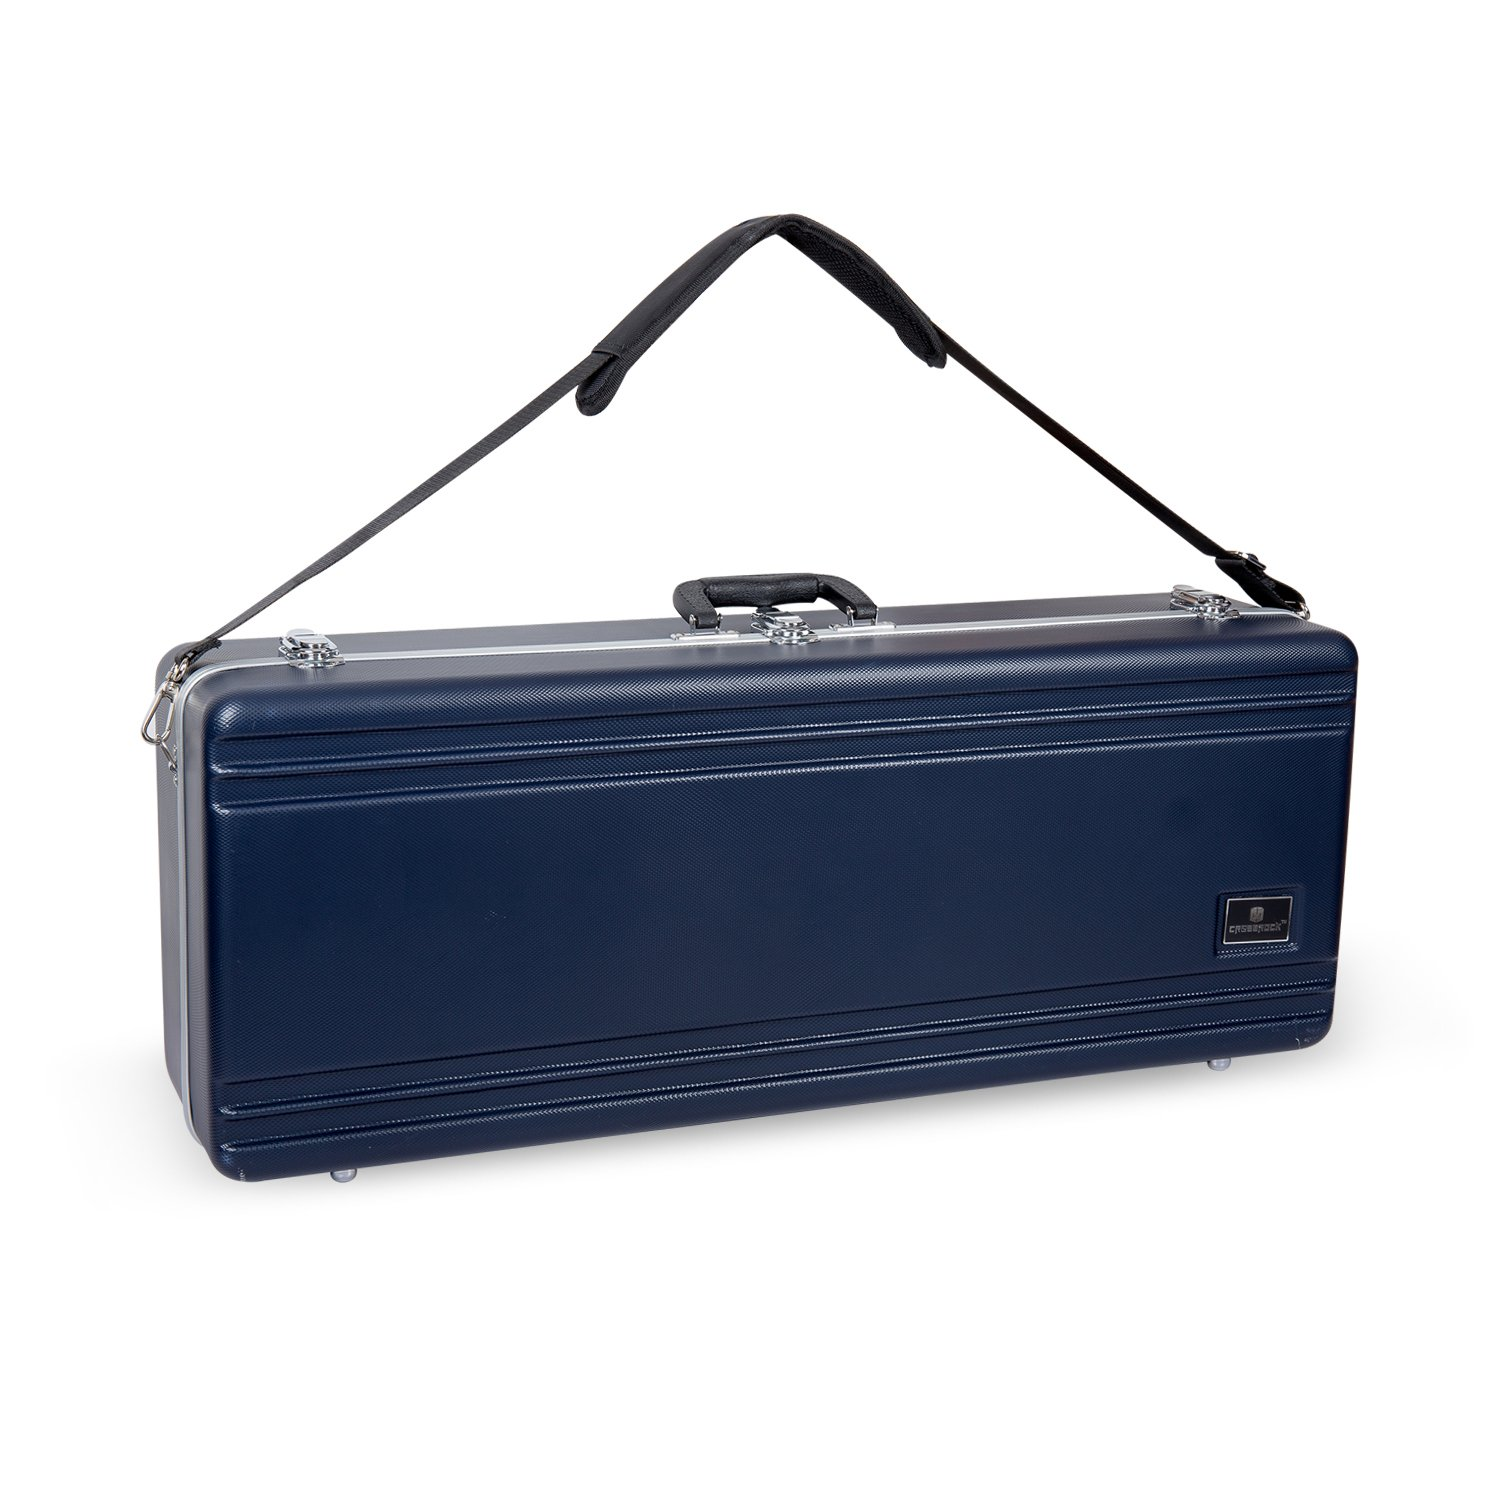 Crossrock CRA860TSSL-R Tenor Saxophone Case- Rectangular ABS Molded with Single Shoulder Strap, Silver